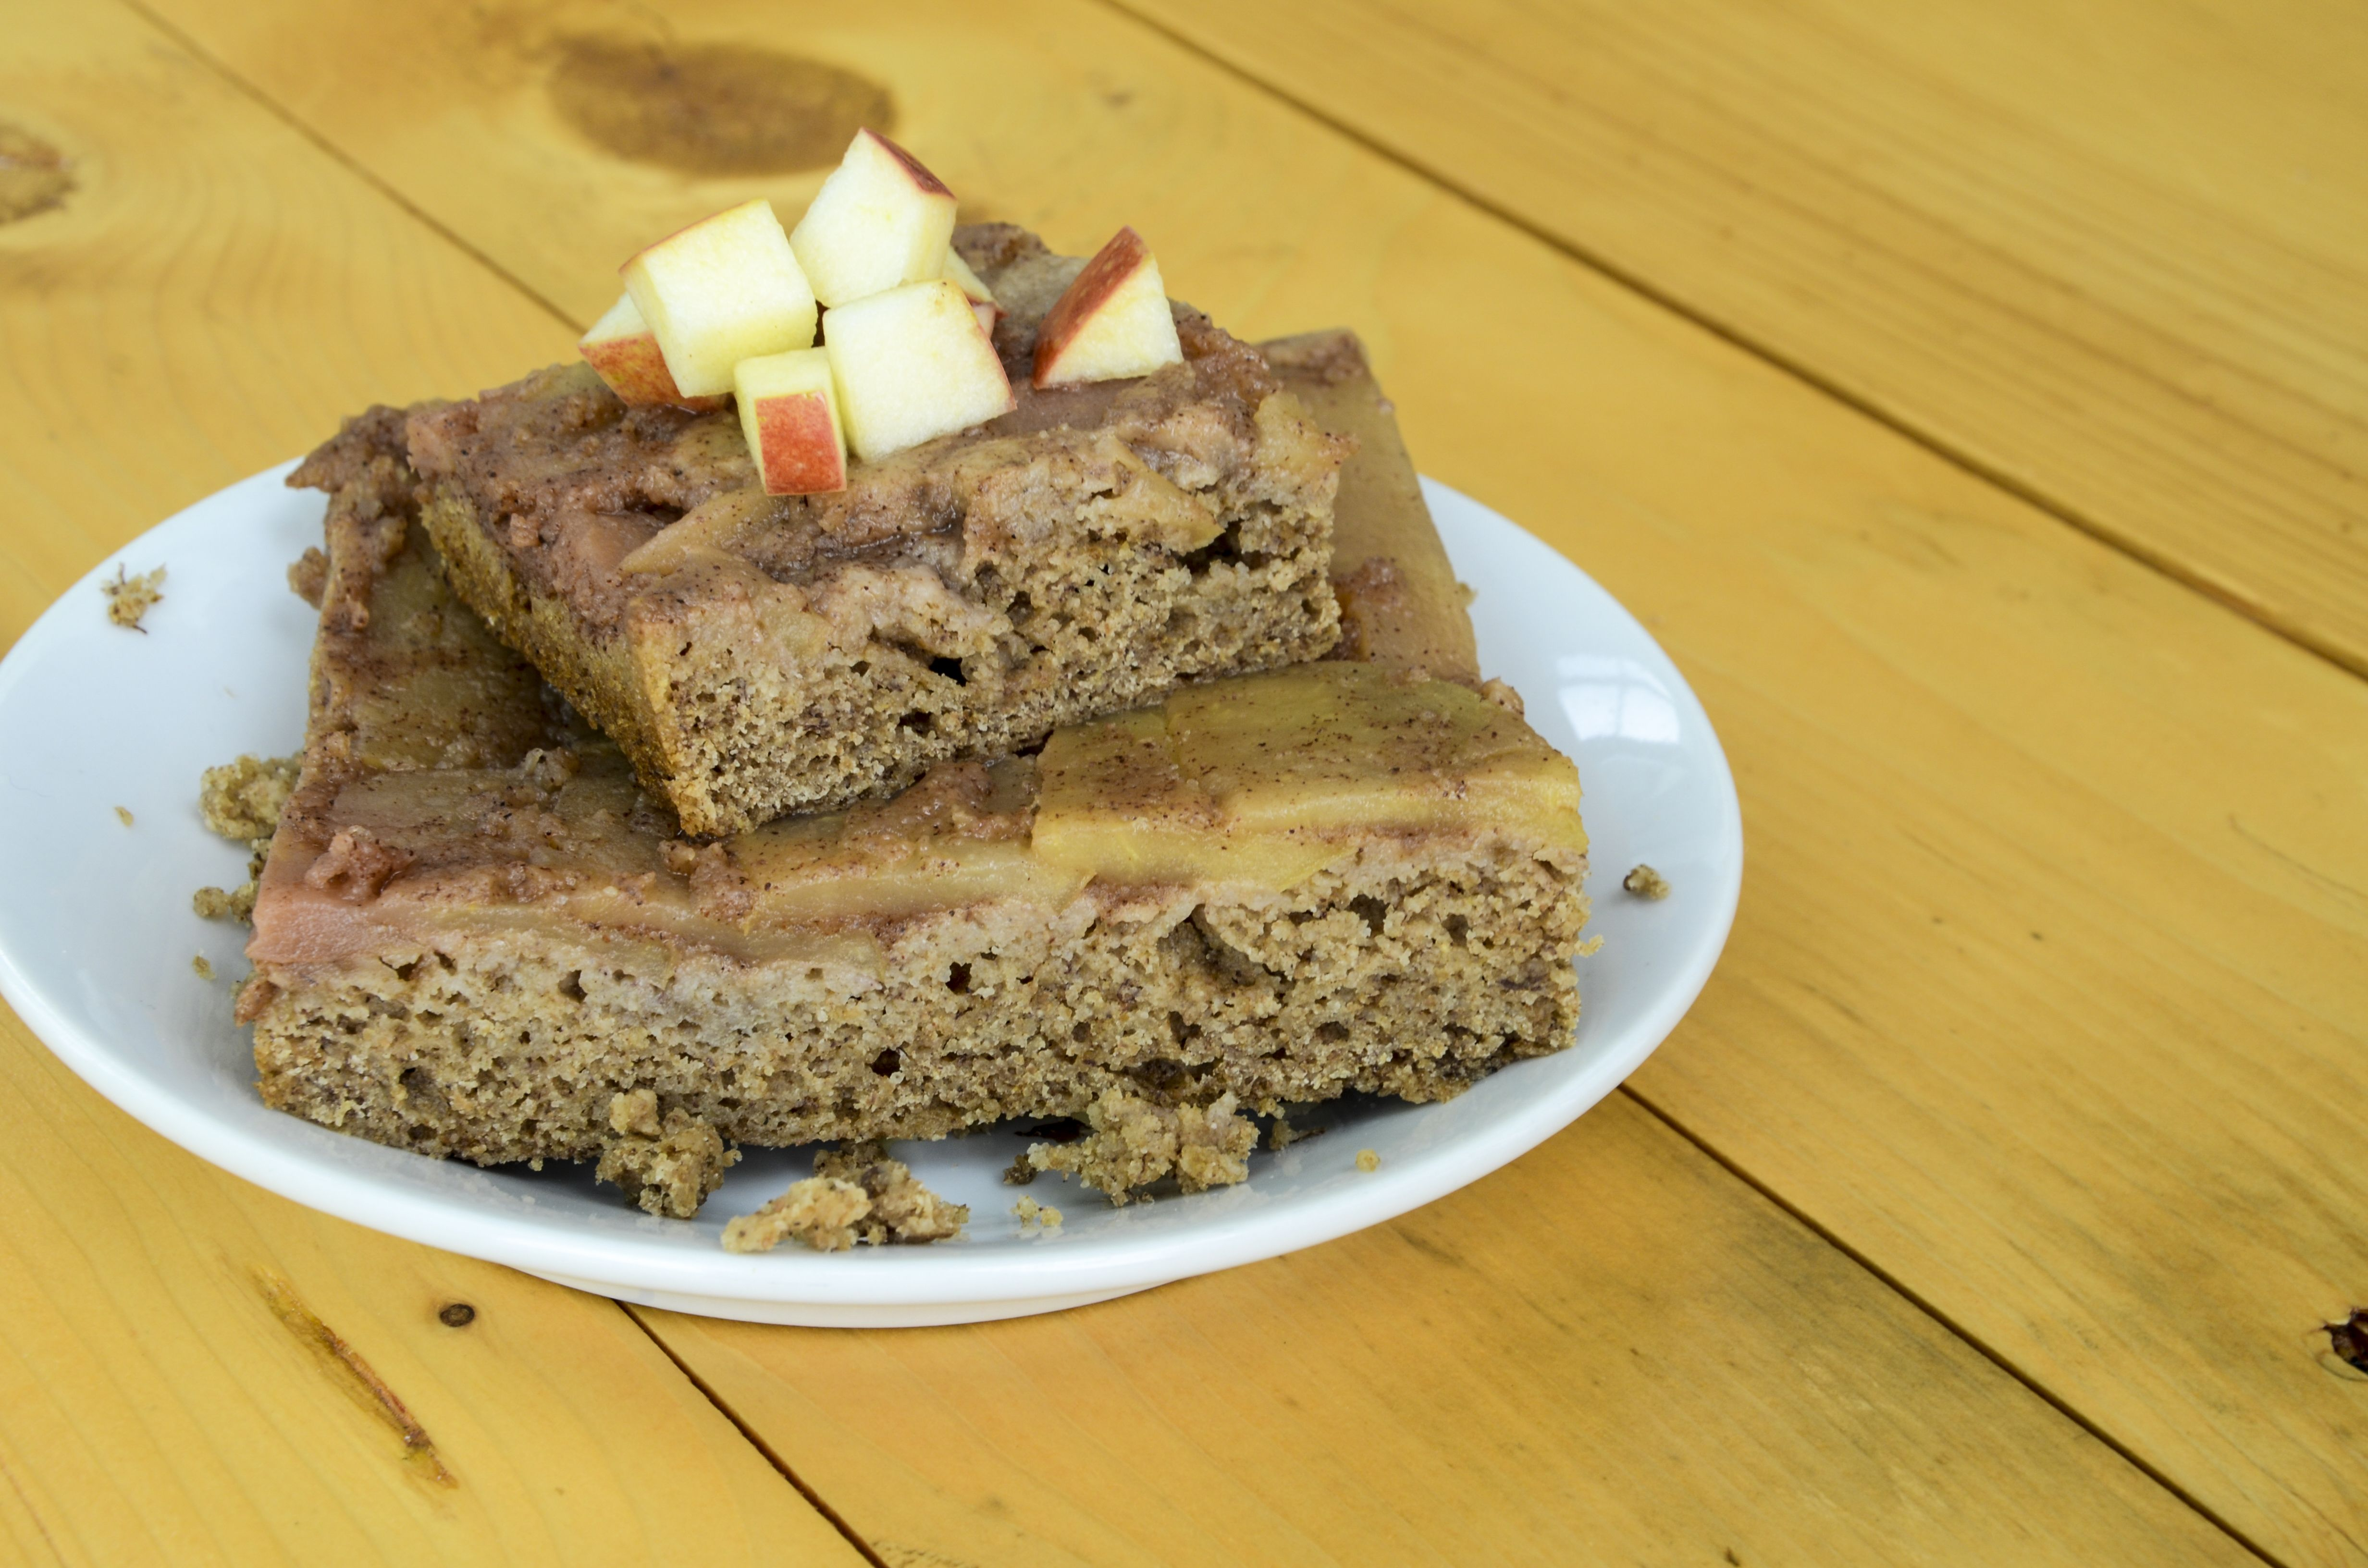 Apple Cake: A fun morning snack, a creative birthday party treat, or an after-school activity for the kids.